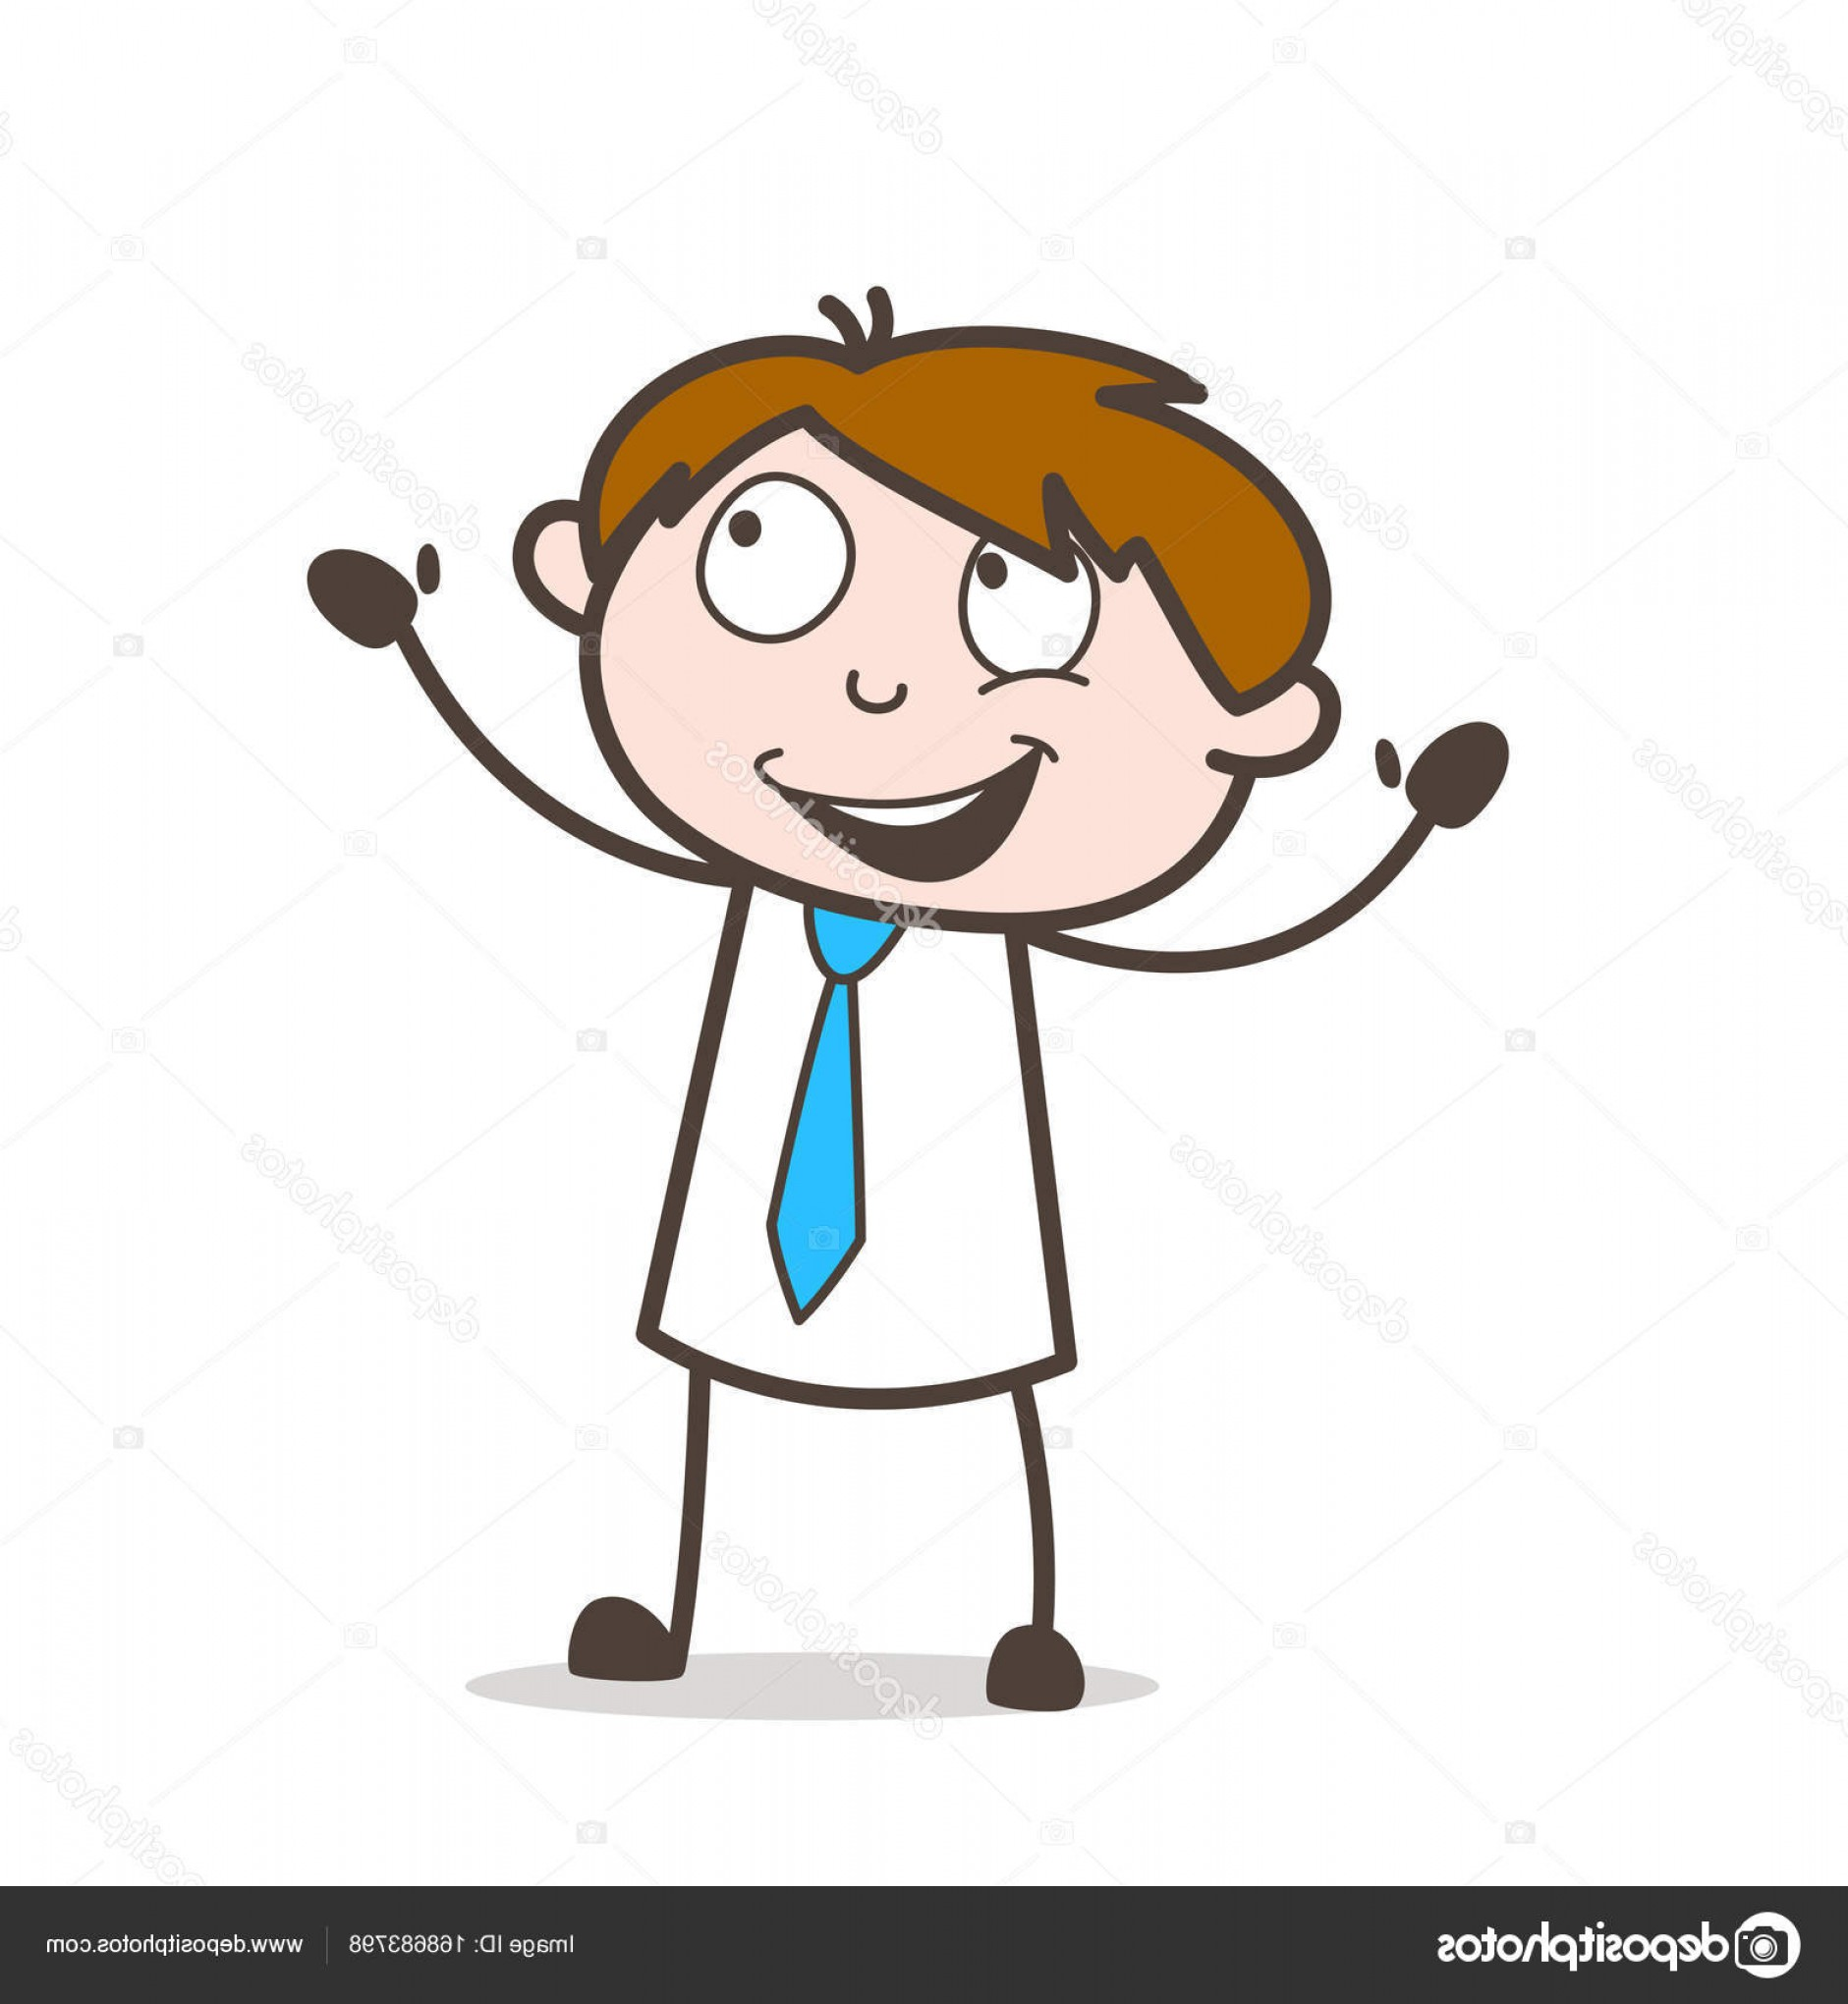 Salesman Vector: Stock Illustration Joyful Cartoon Salesman Character Vector